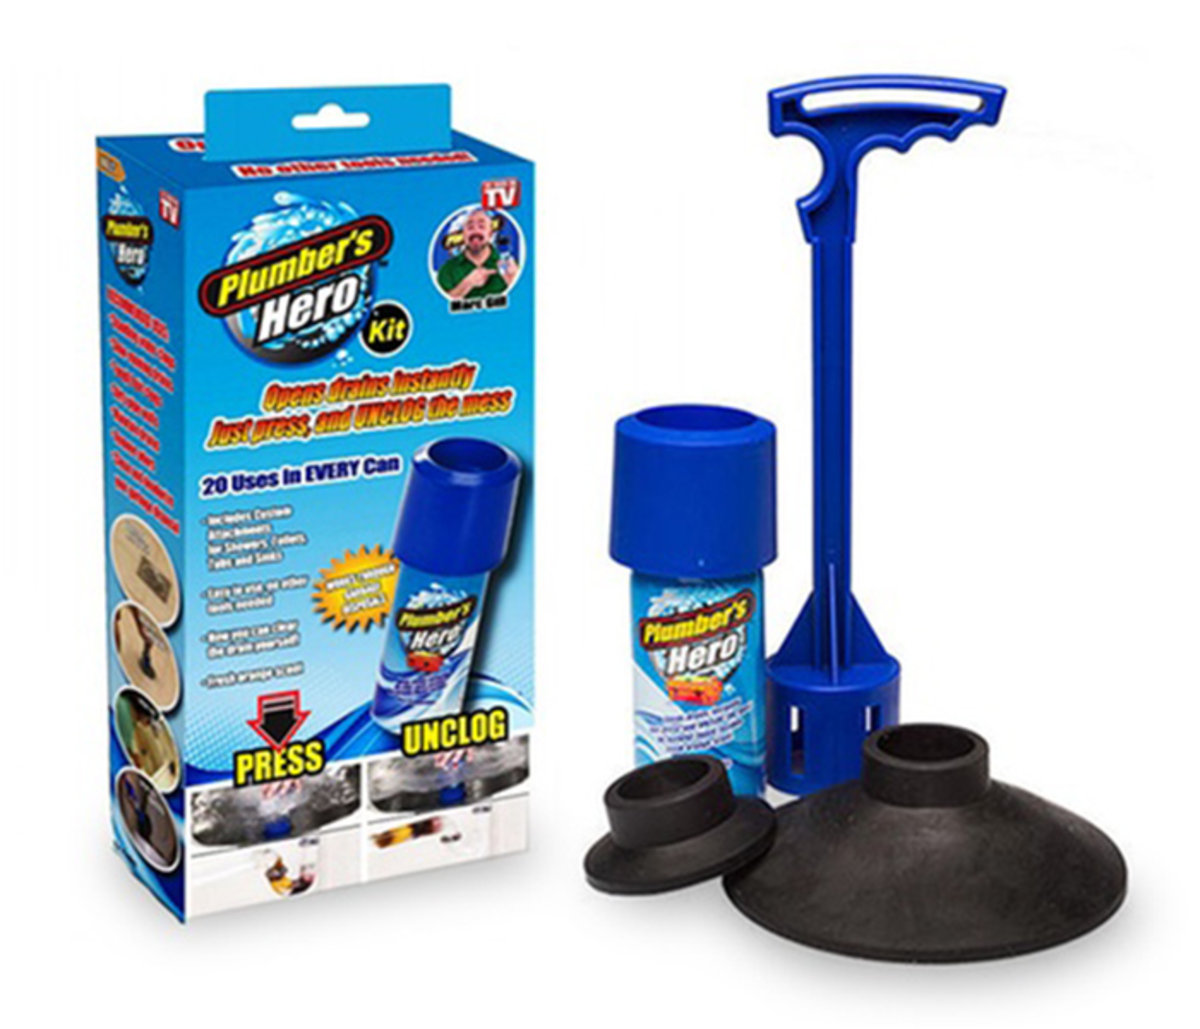 Plumber's Hero Kit - Unclog Drains Instantly